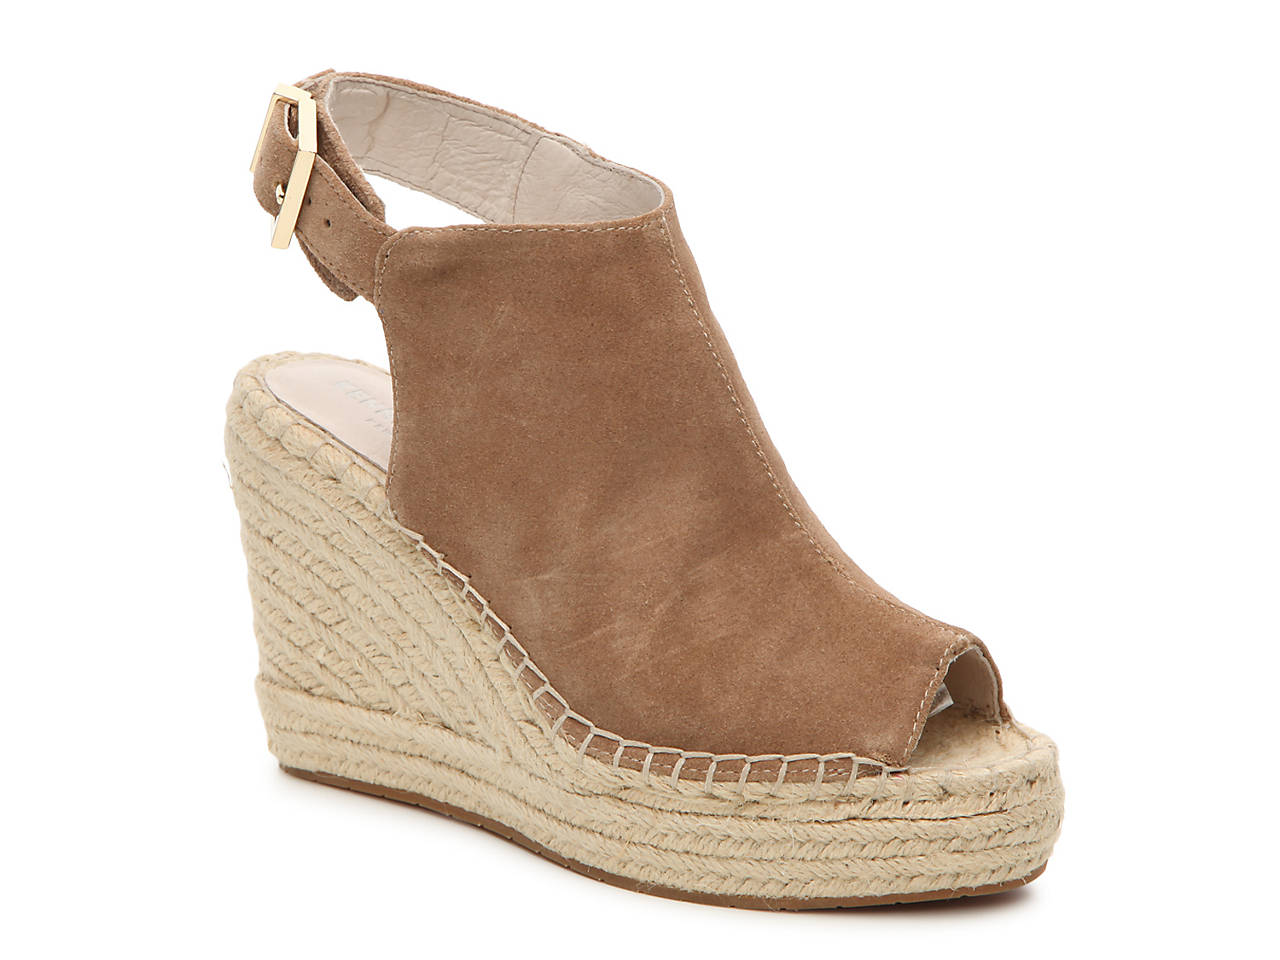 fc6d0c15db4 Kenneth Cole New York Olivia Suede Wedge Sandal Women s Shoes